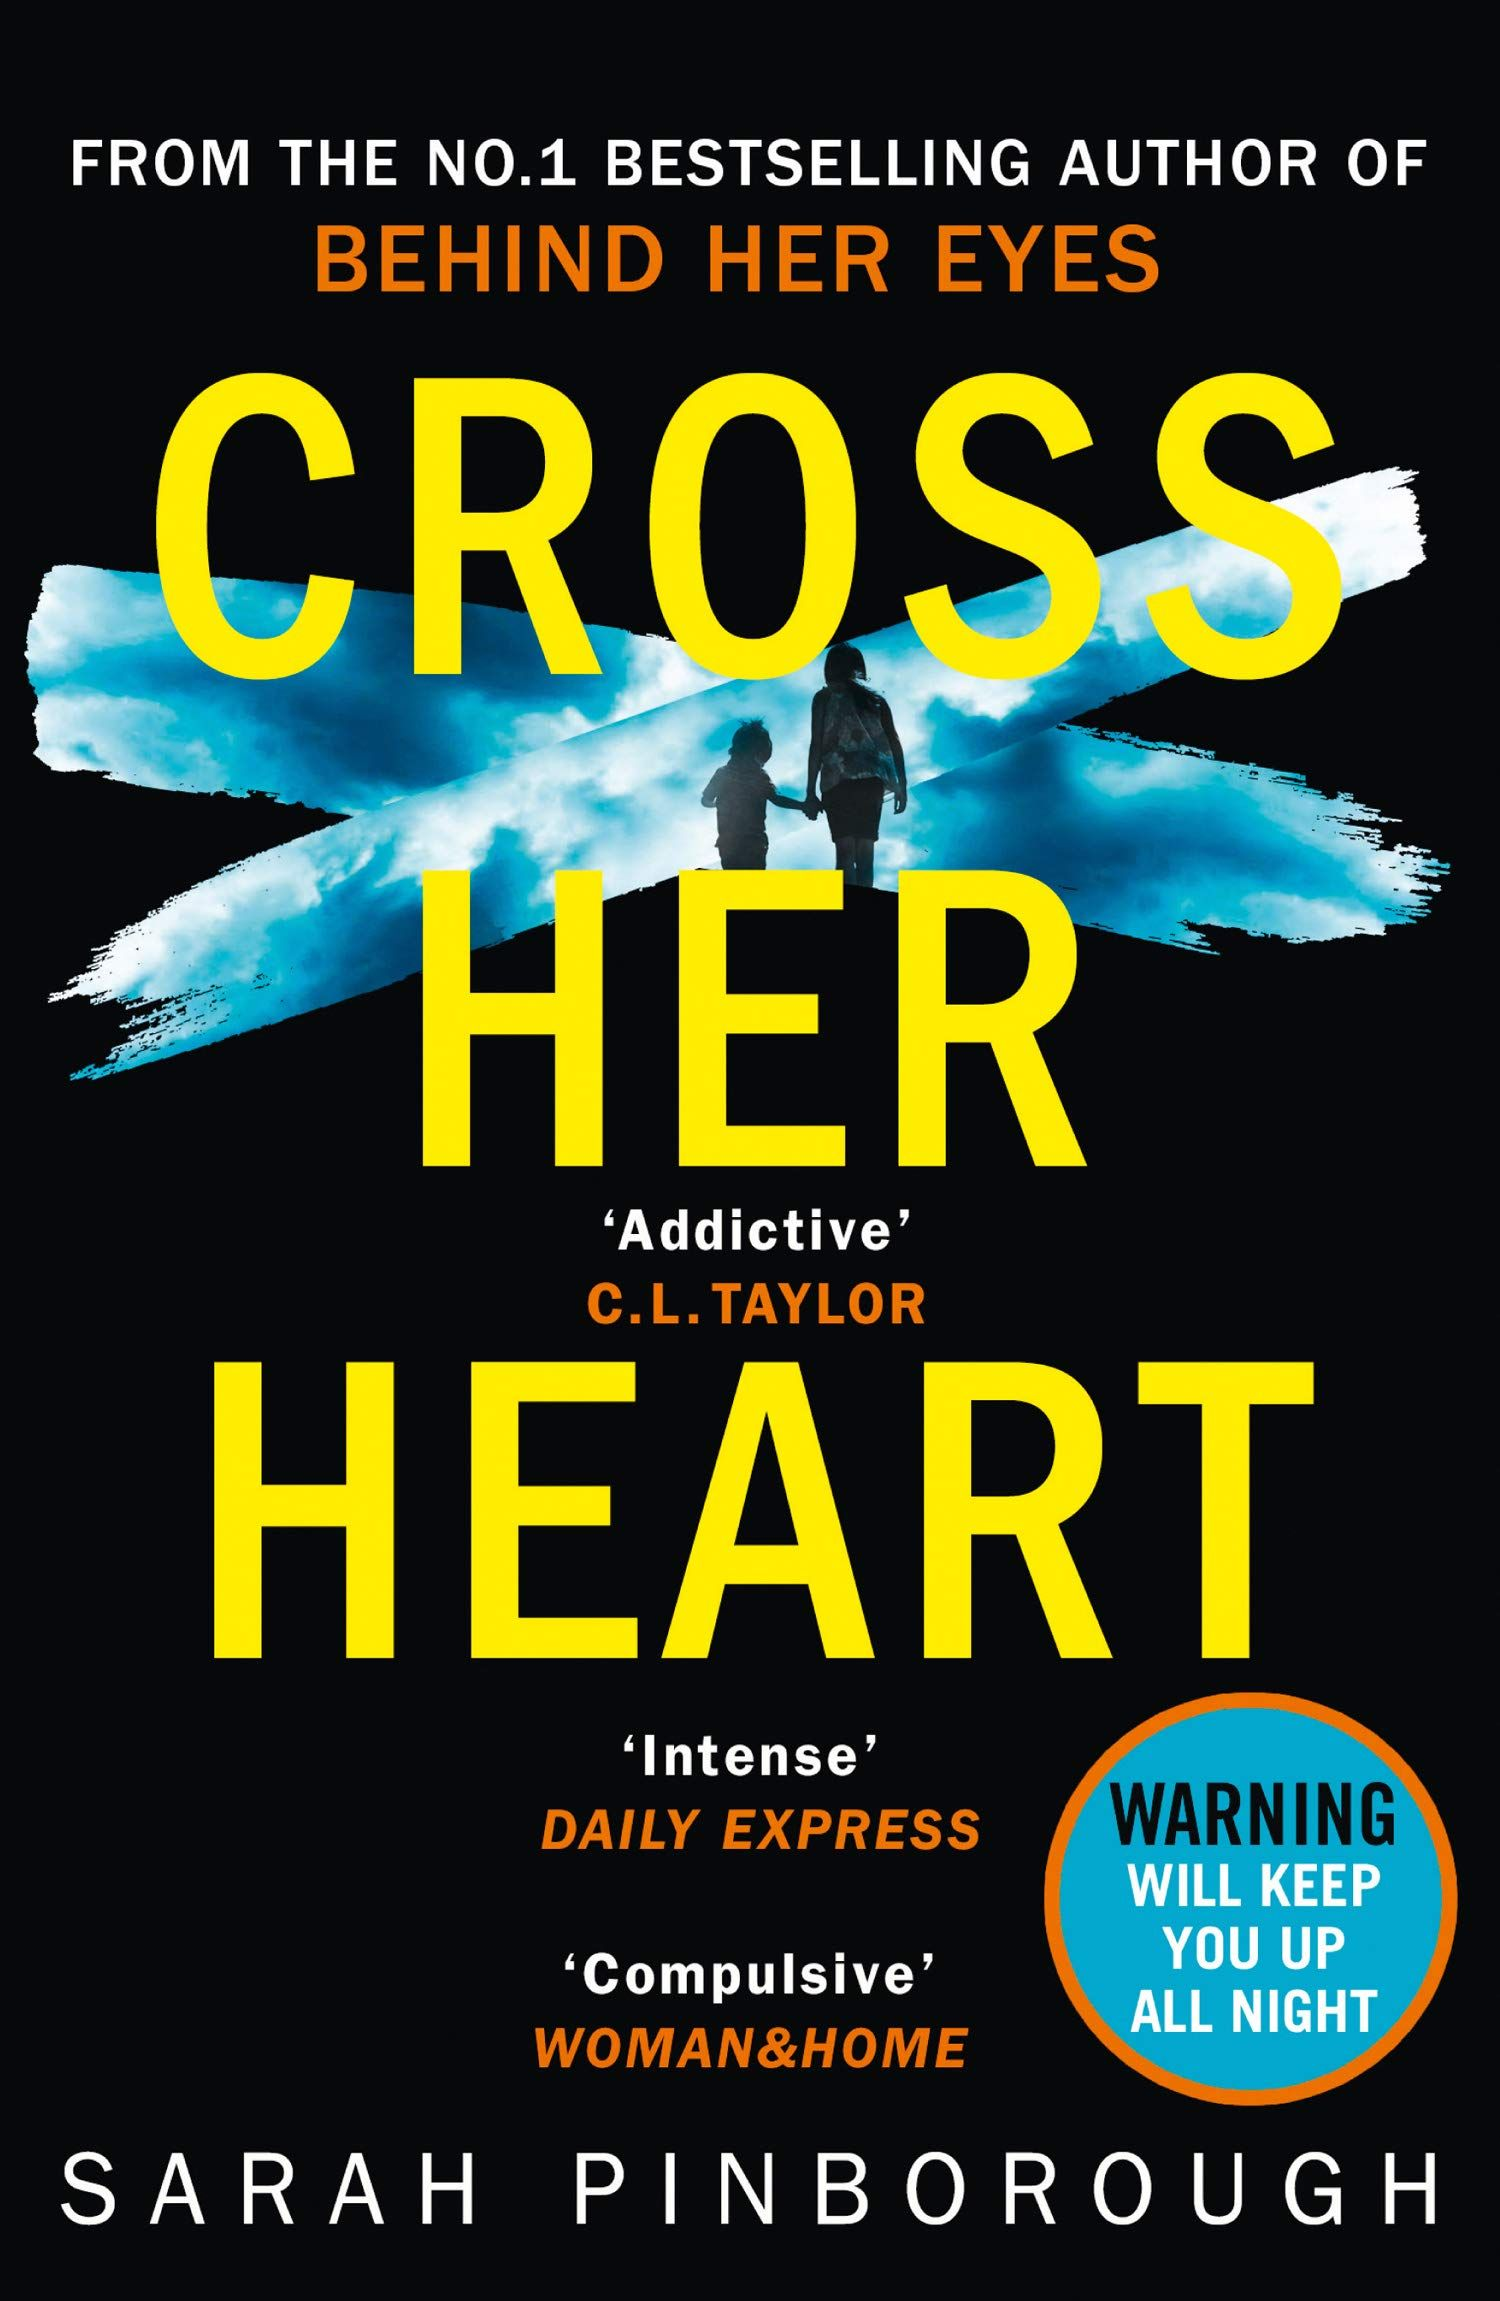 In cross her heart by sarah pinborough one moment will